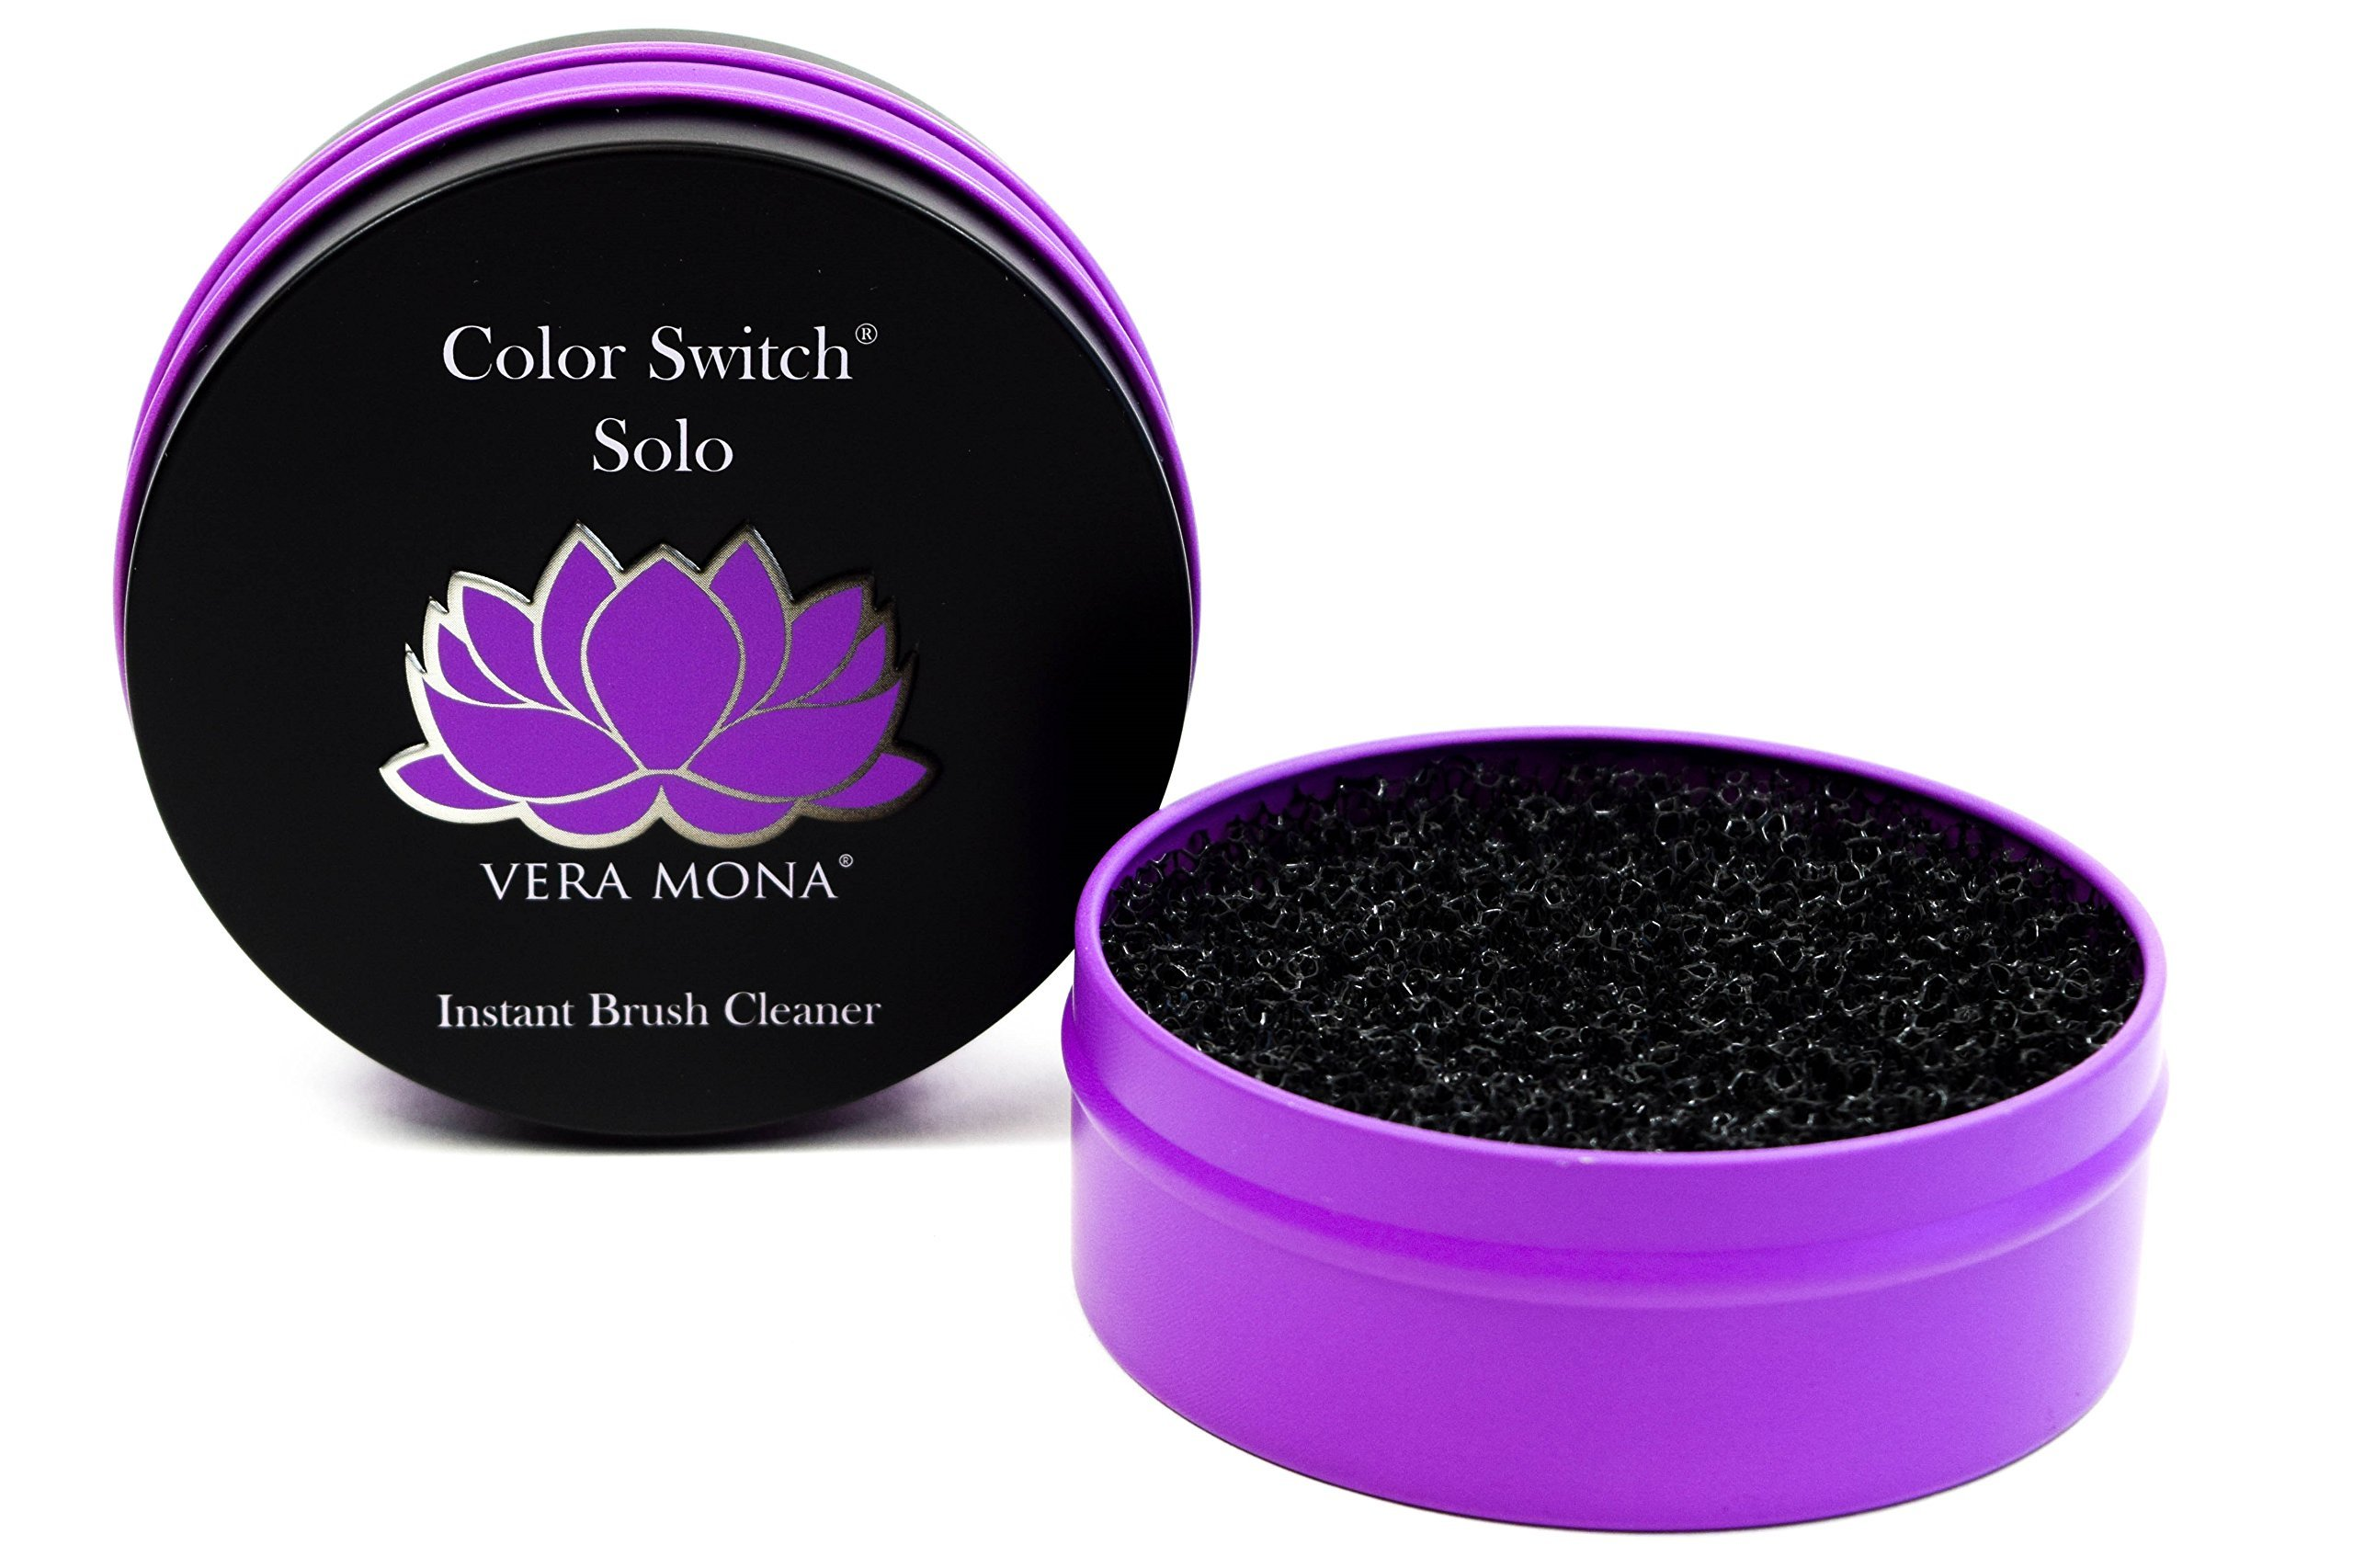 Vera Mona Color Switch Solo - Removes Shadow Color from Your Brush